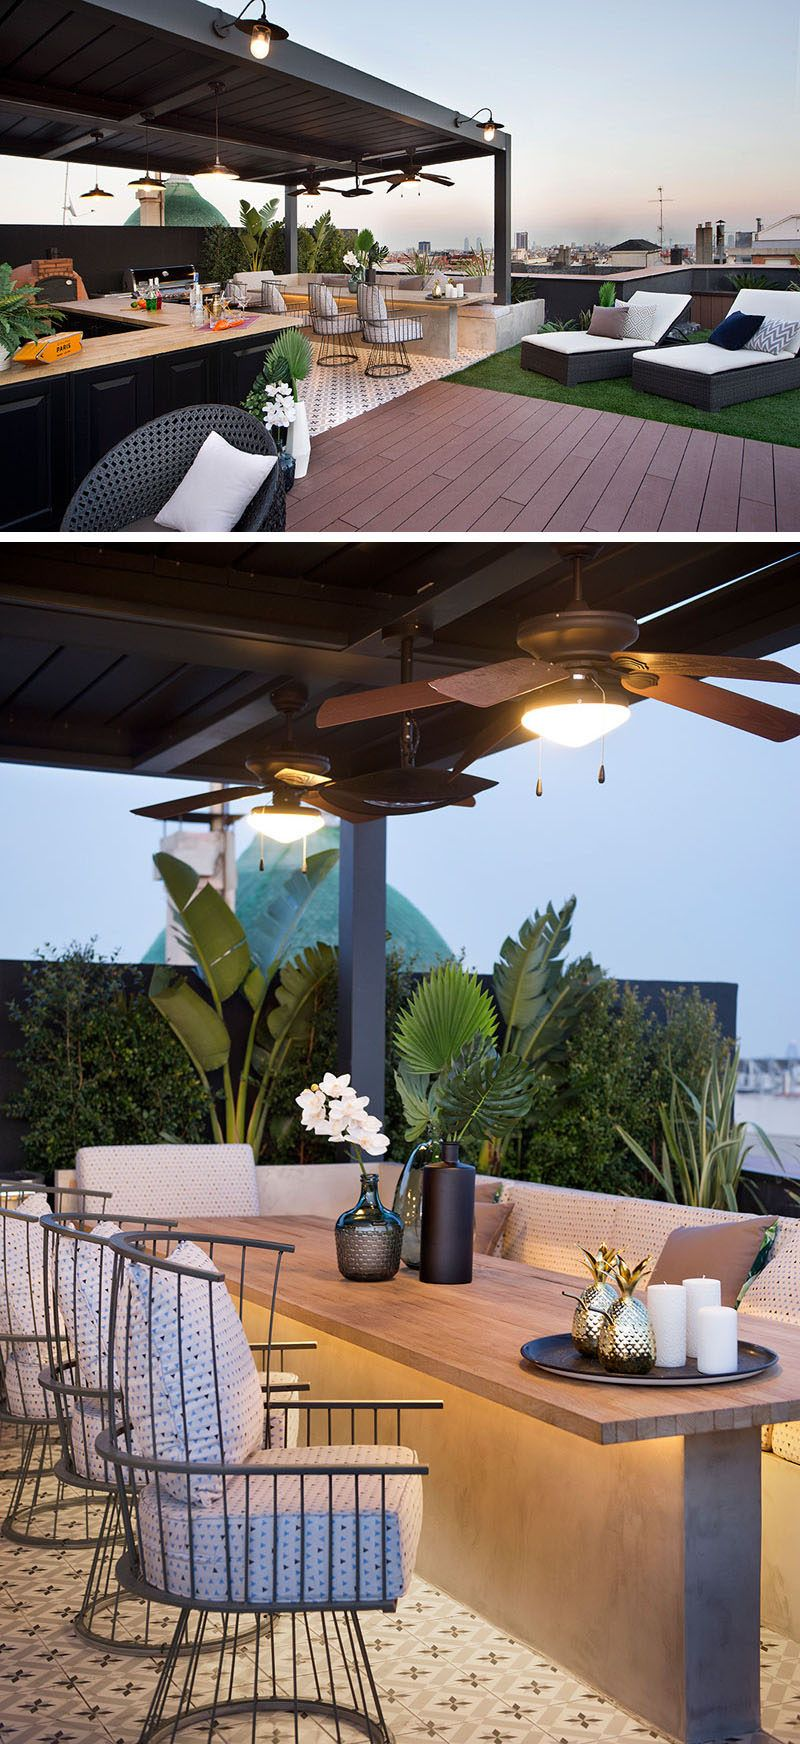 This Apartment In Barcelona Was Completed With A Rooftop Entertaining Space #rooftopterrace